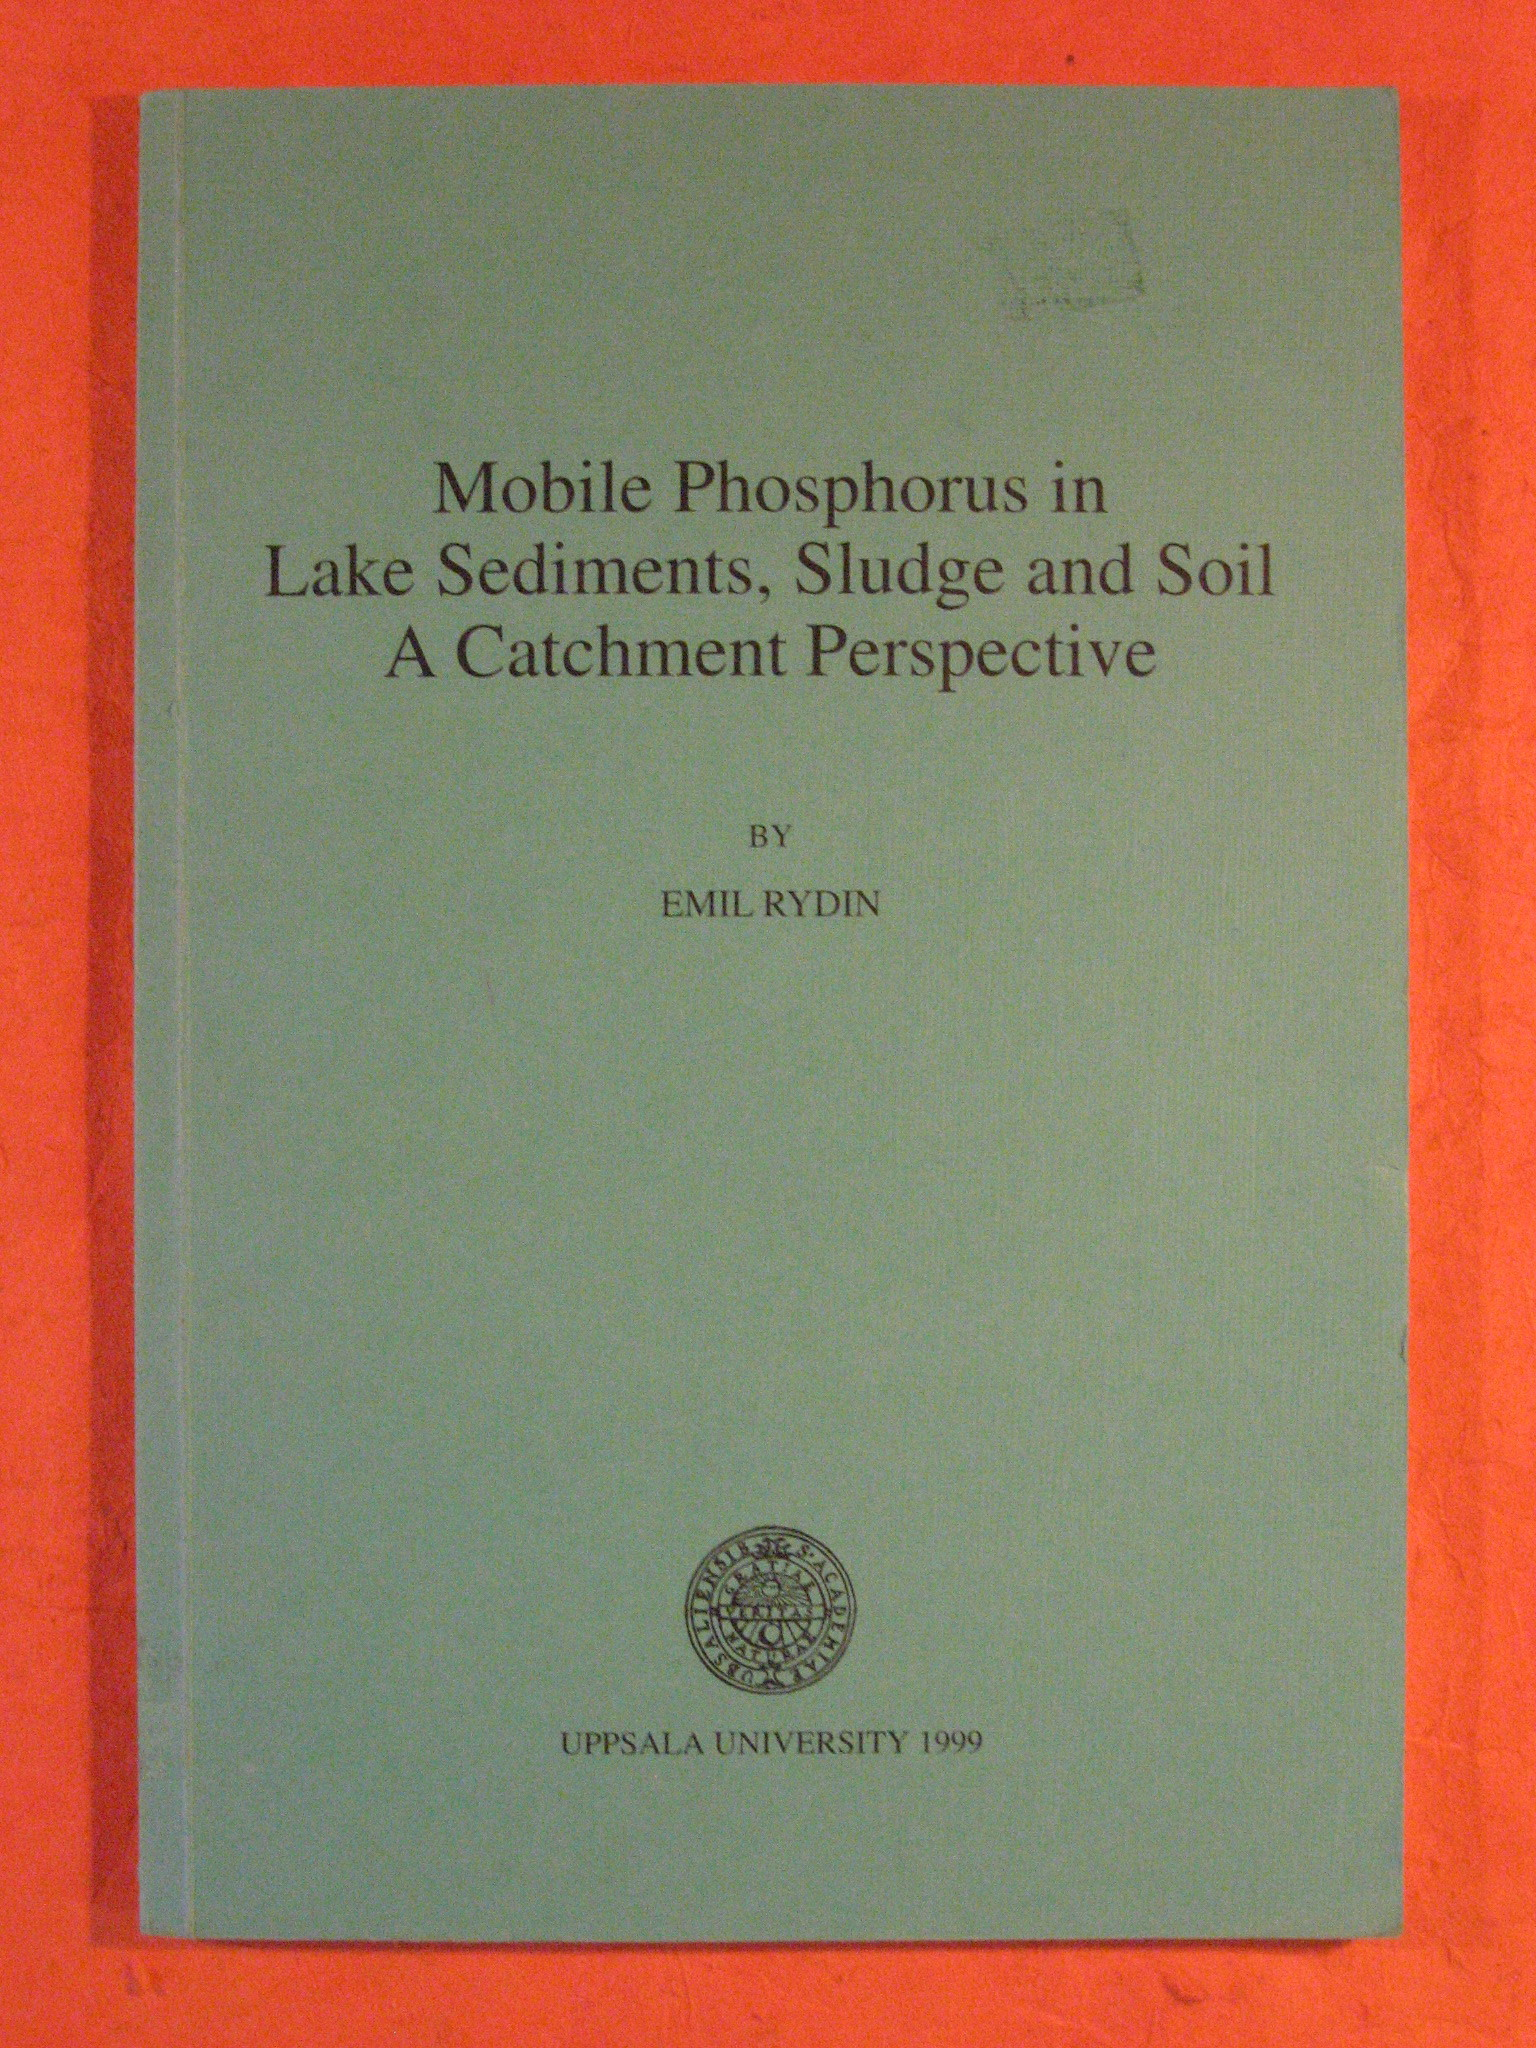 Mobile Phosphorus in Lake Sediments, Sludge and Soil: a Catchment Perspective, Rydin, Emil